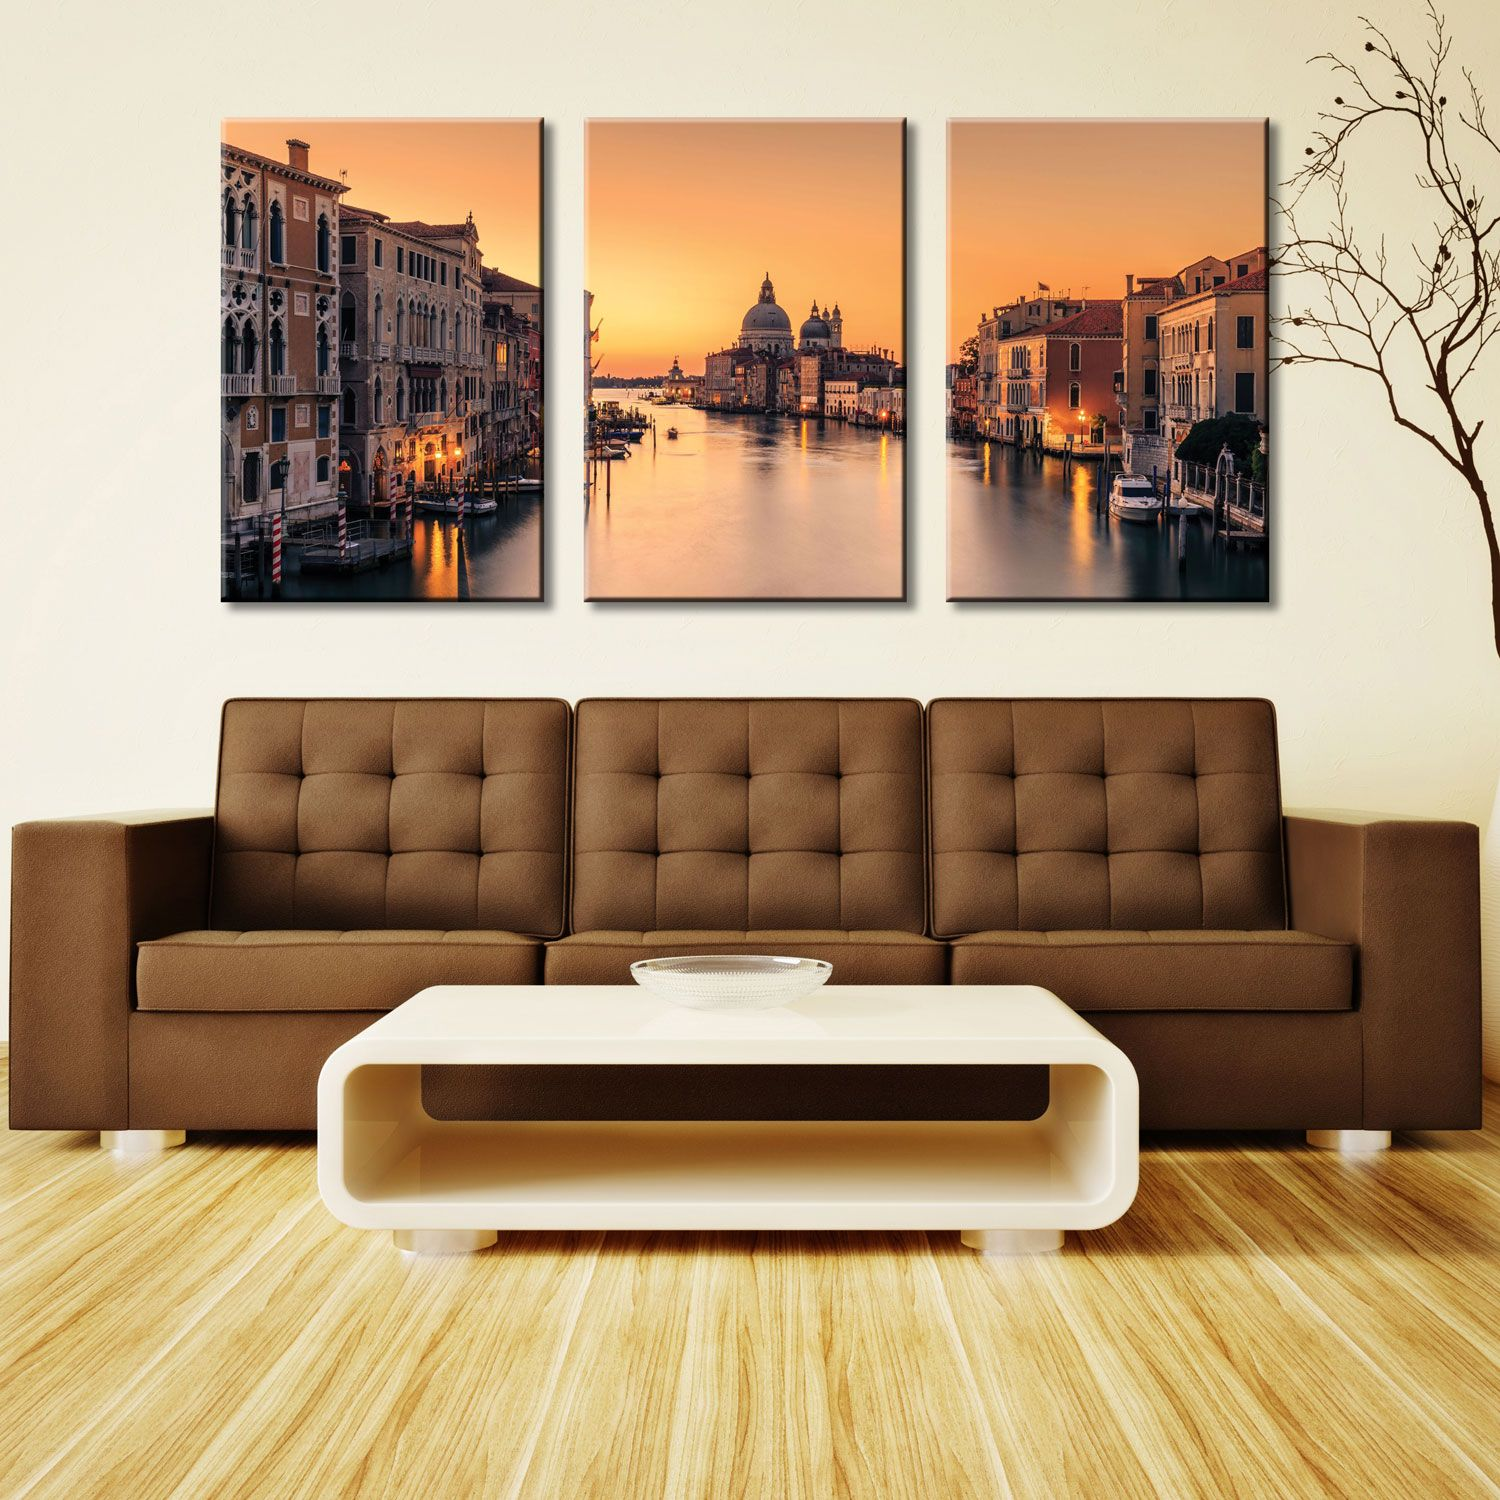 Wall Prints For Living Room Australia Dawn On Venice 3 Piece Art Set 3 Panel Wall Art Canvas 3 Piece